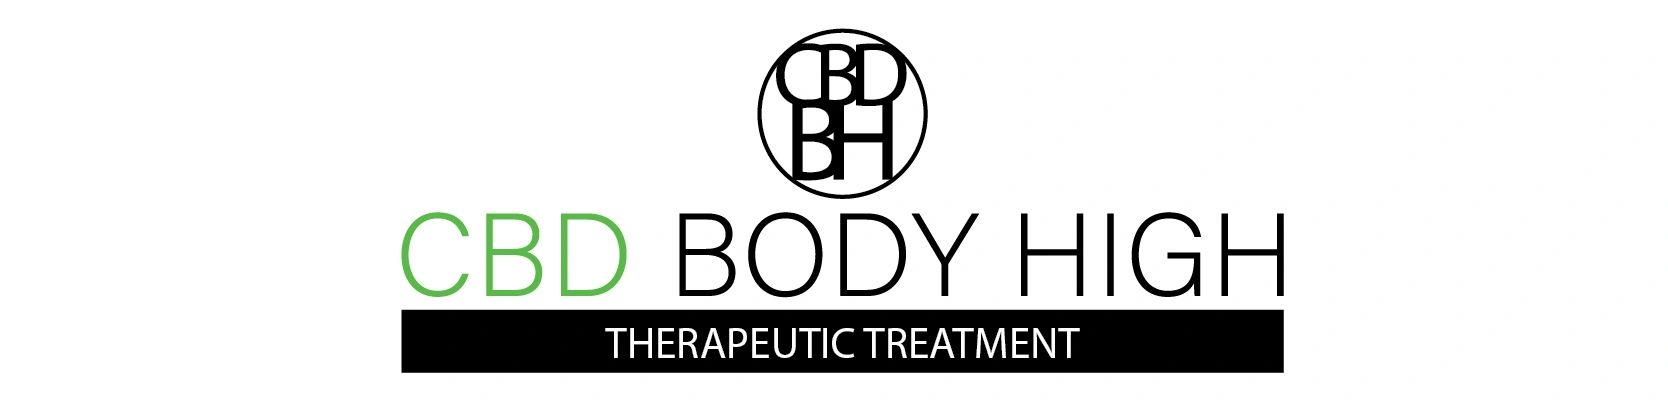 CBD Body High - Care By Design Body High. A therapeutic treatment shop.